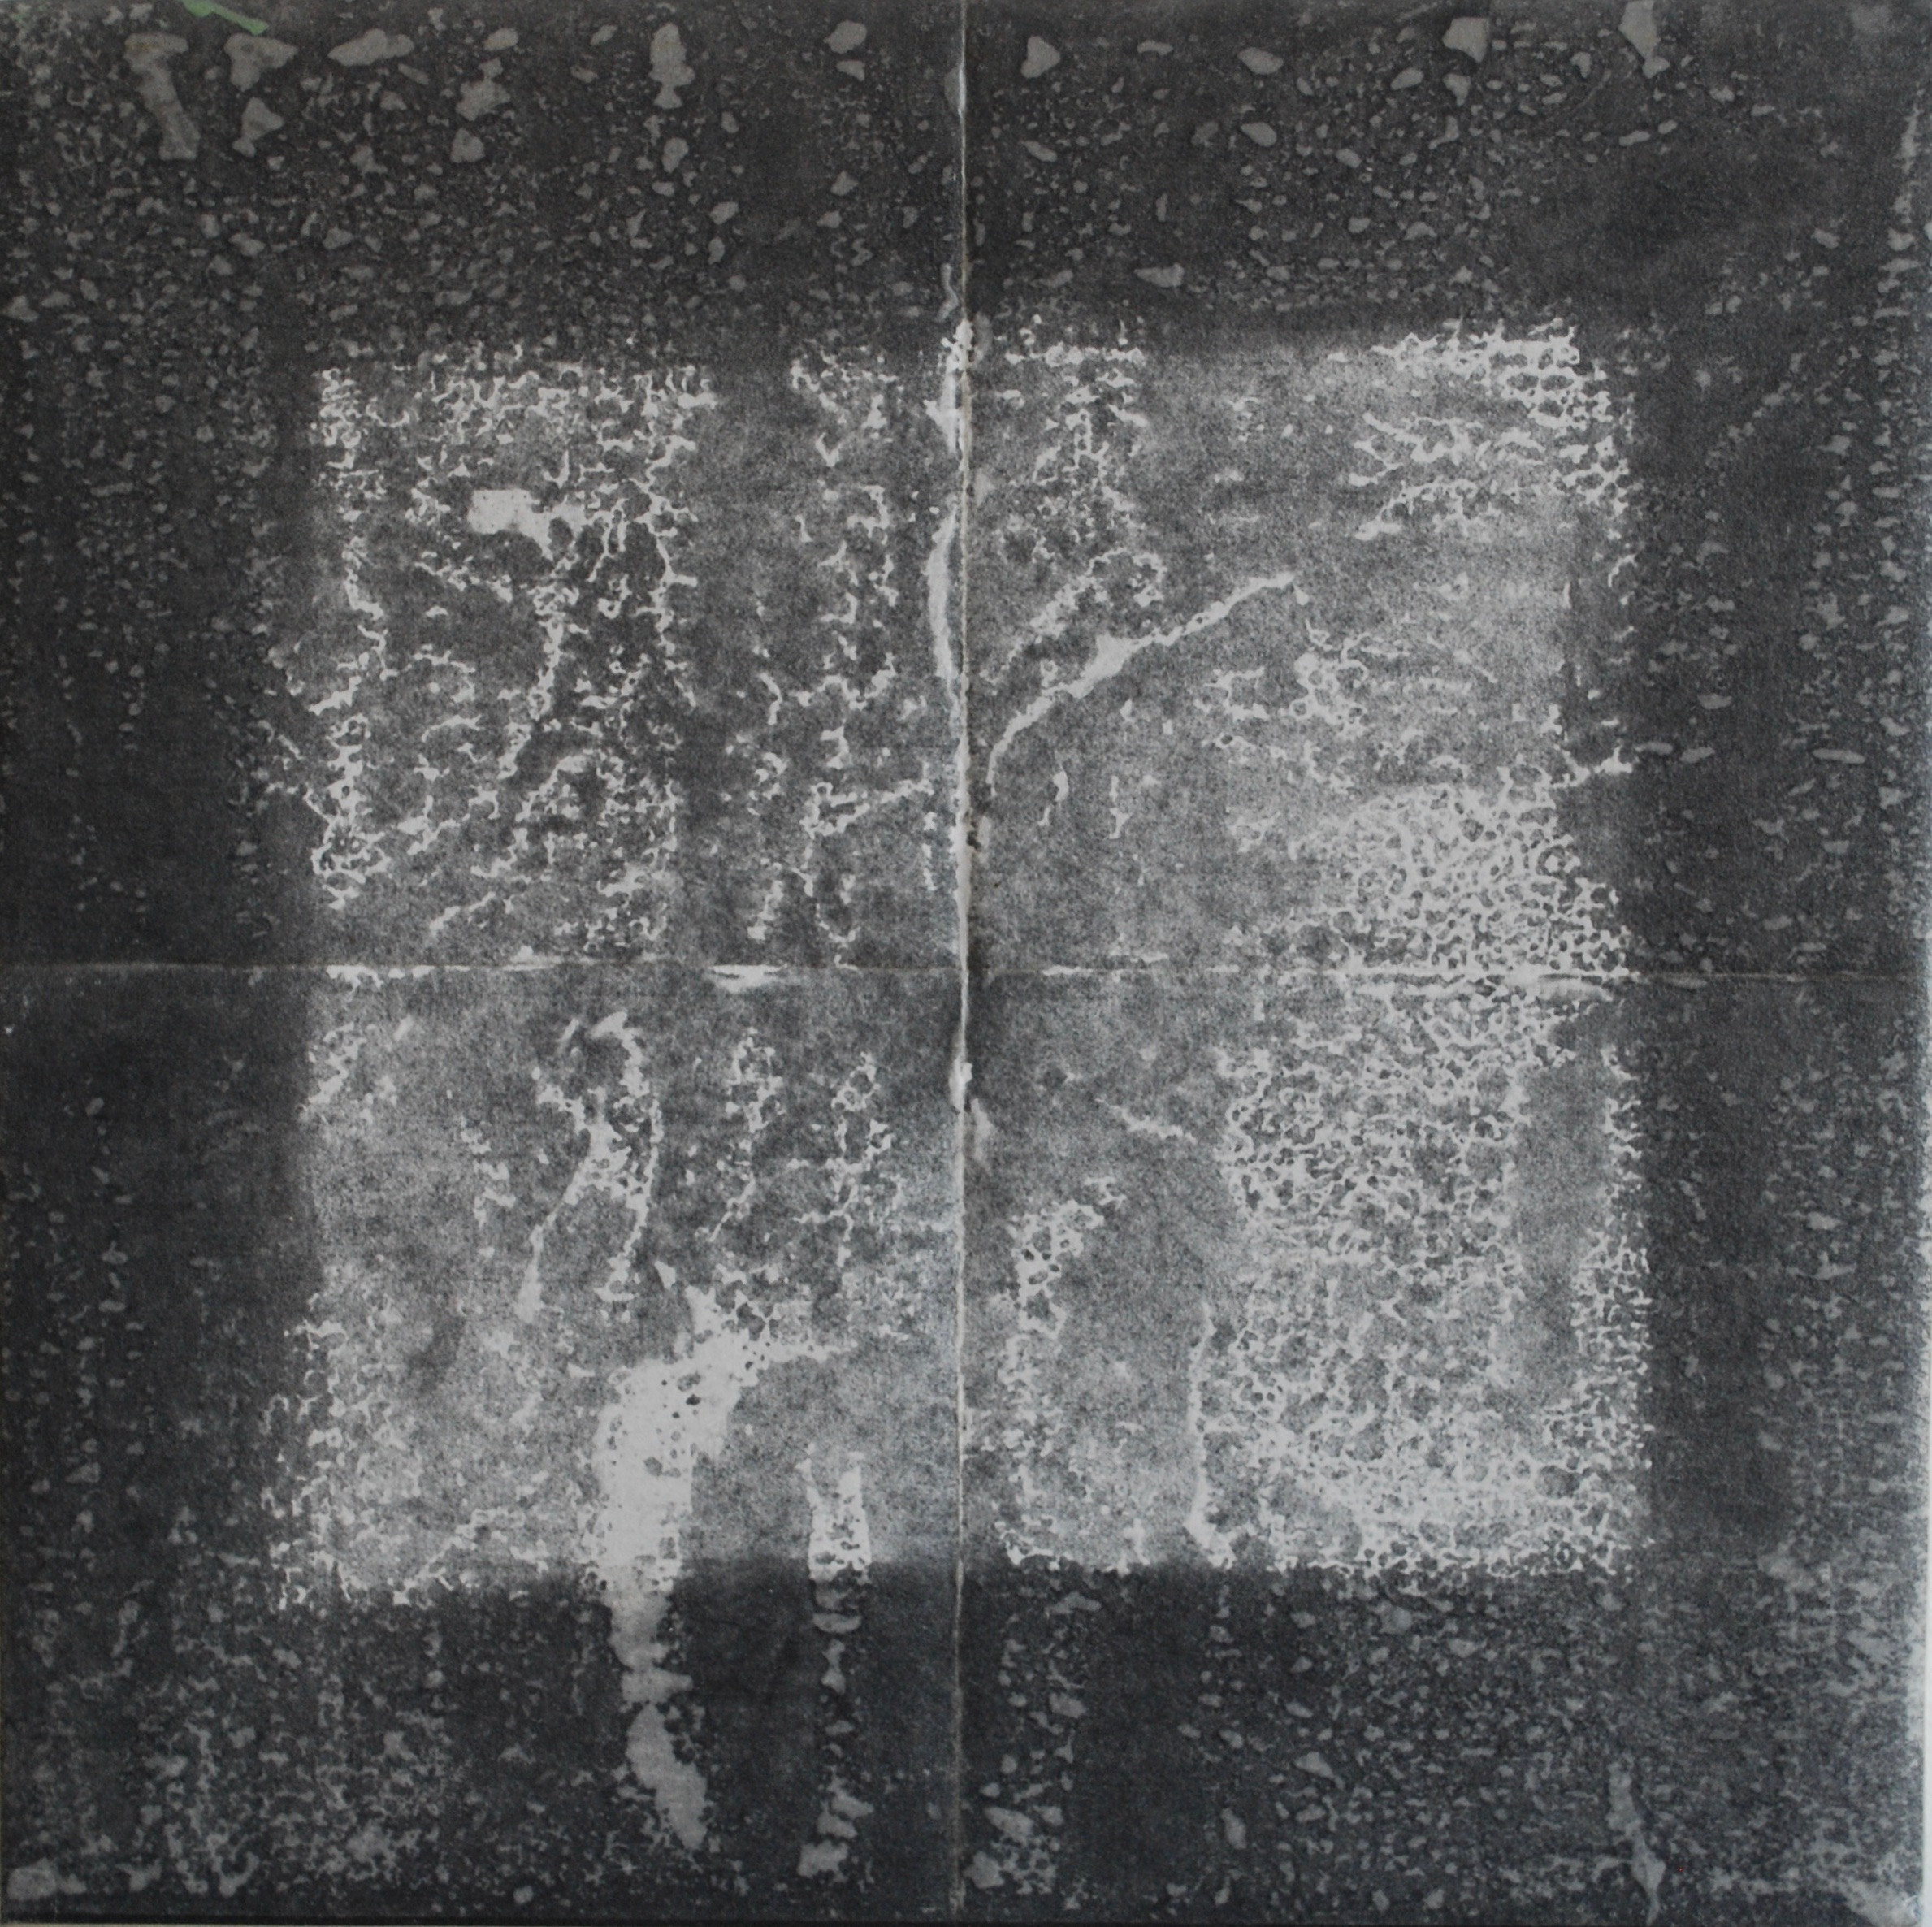 SoHyun Bae, Bojagi #2, 1999, rice-paper on sand-paper on canvas, 18 x 18 inches